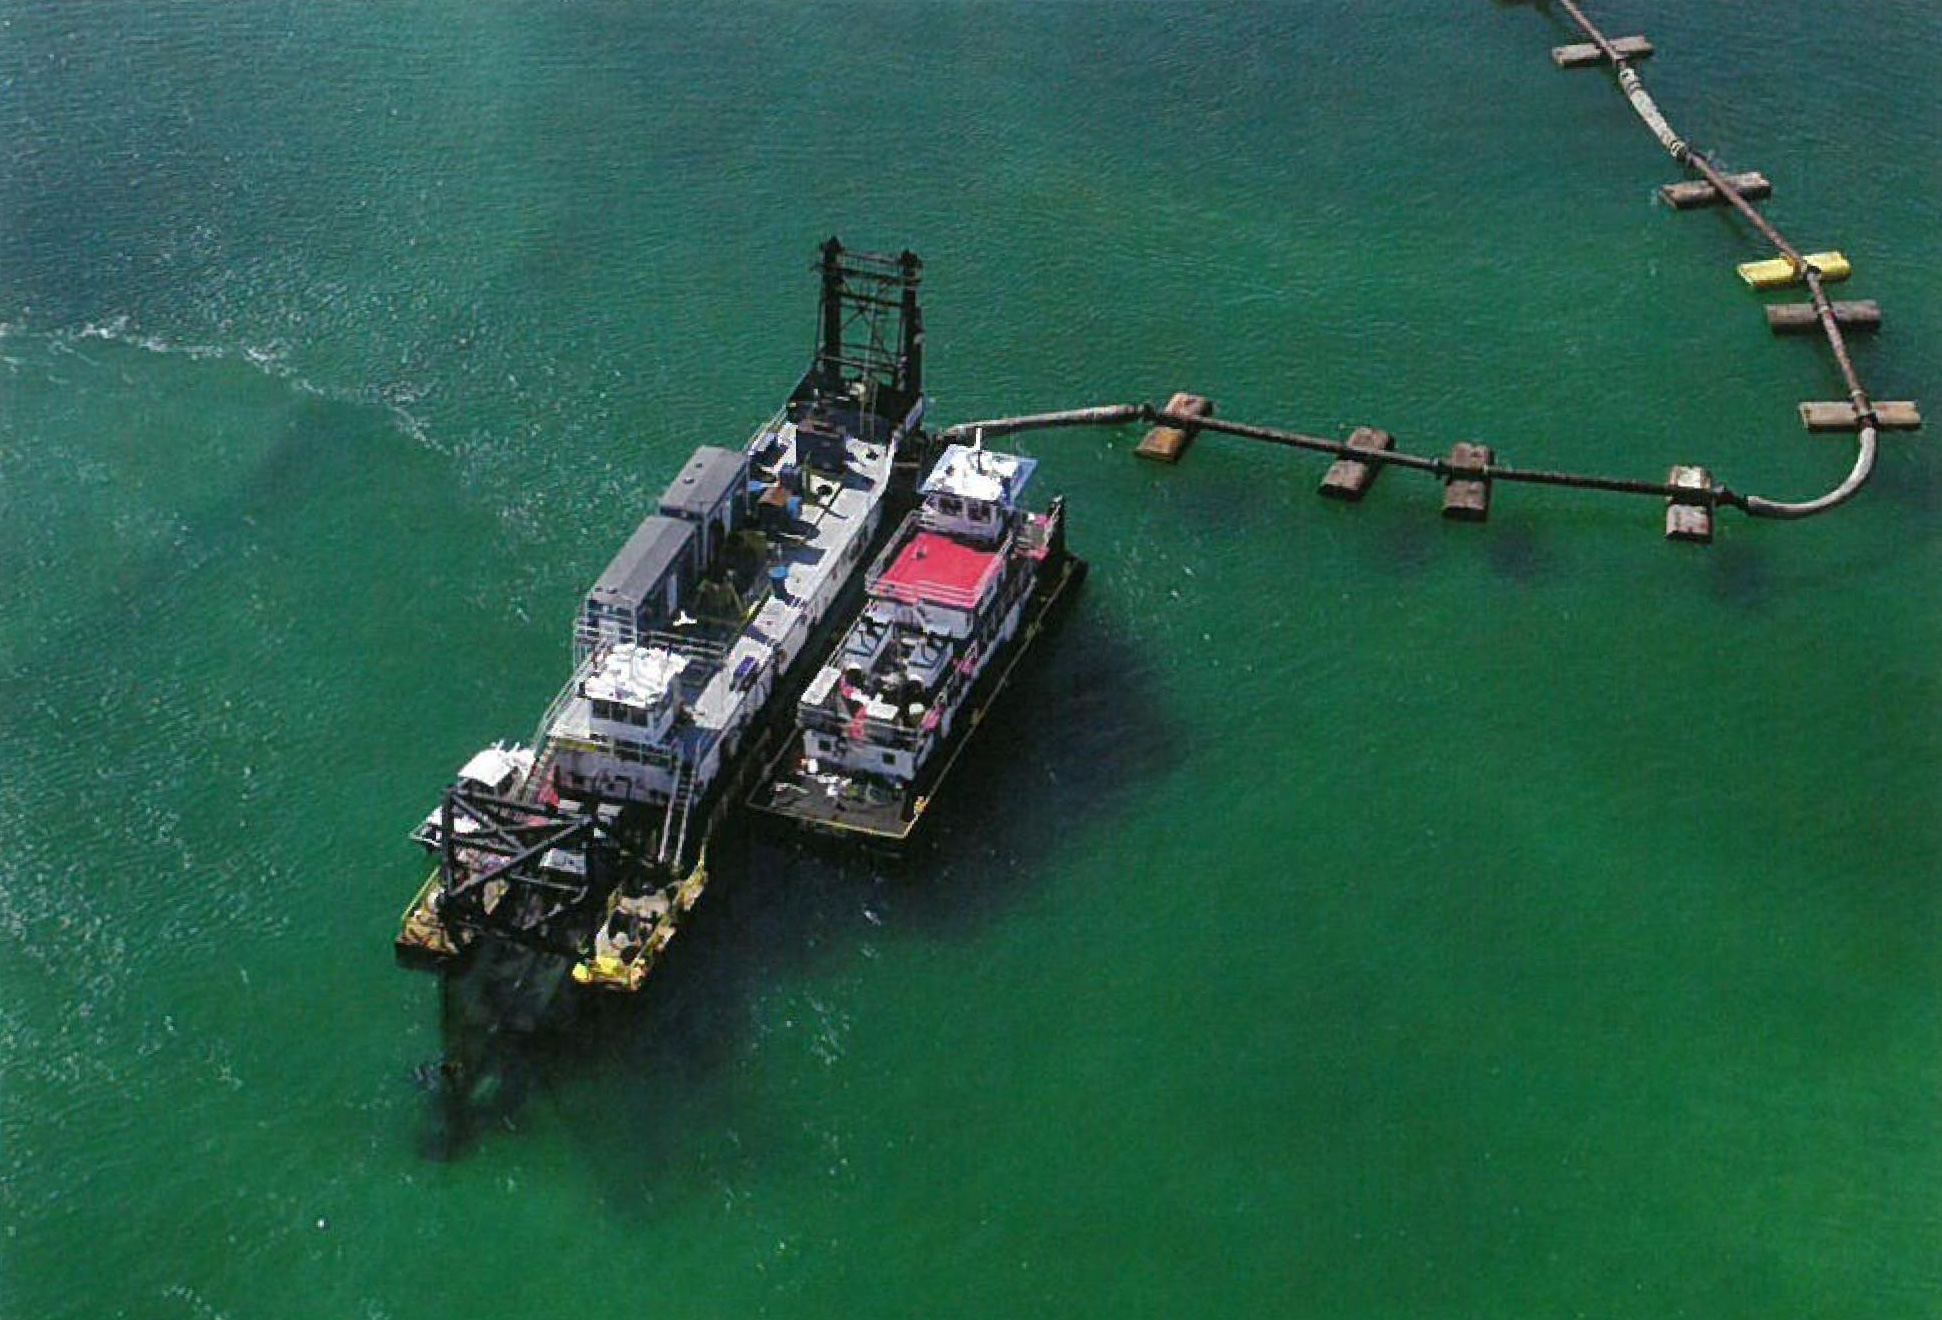 Pipeline DQM Program Underway with Two Dredges Certified and Working